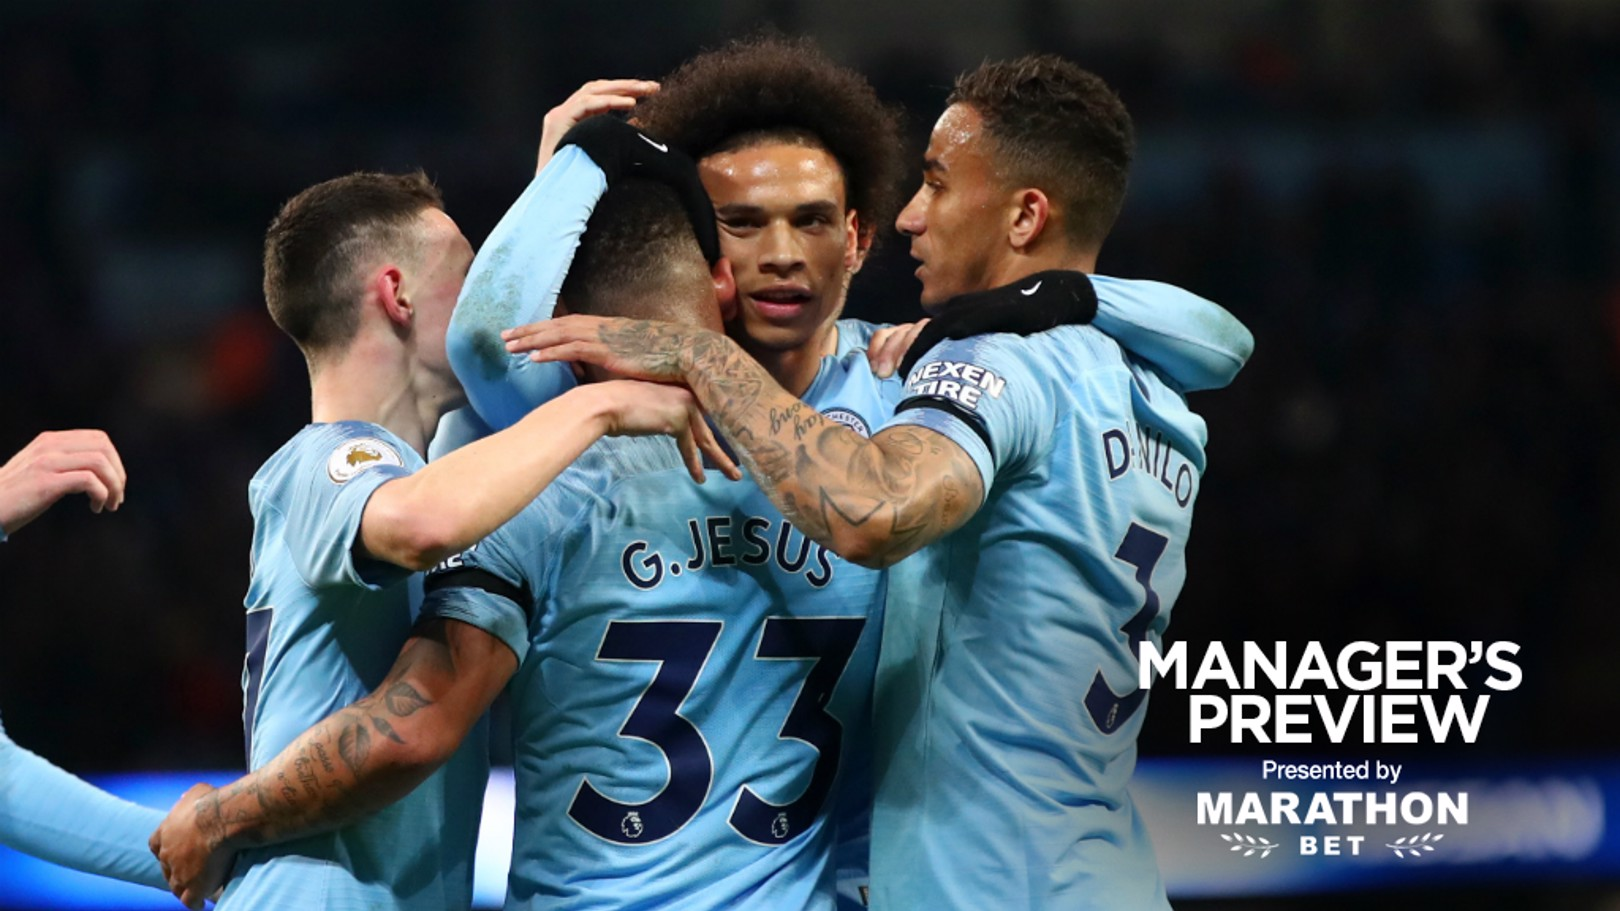 ADMIRATION: Pep Guardiola asserted Leroy Sane is important to his plans, as City continue the hunt for unprecedented success.